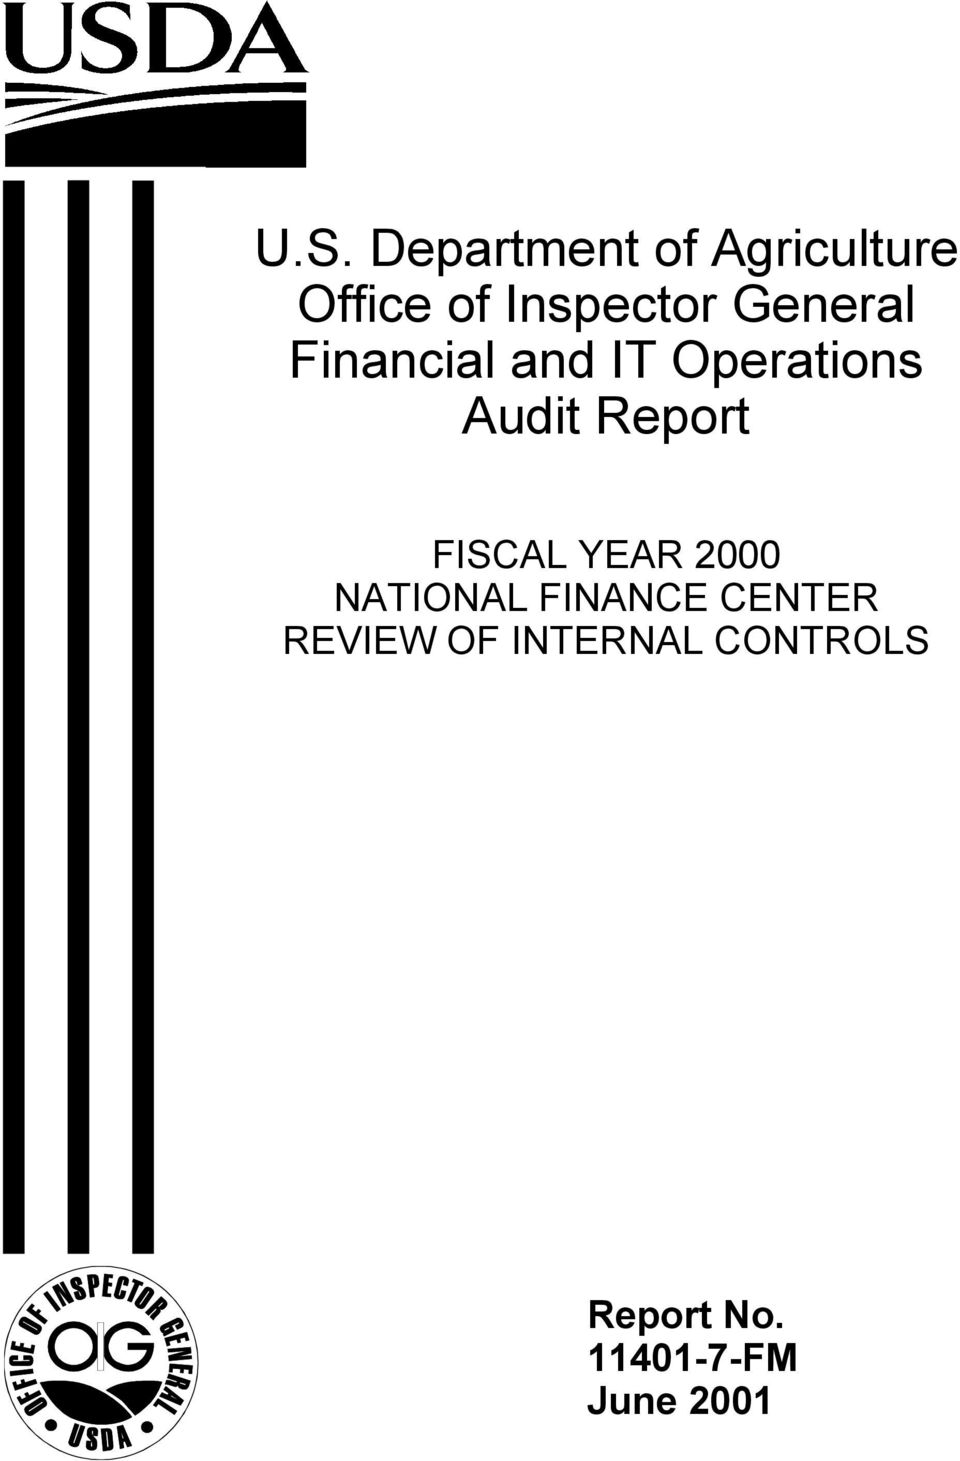 FISCAL YEAR 2000 NATIONAL FINANCE CENTER REVIEW OF